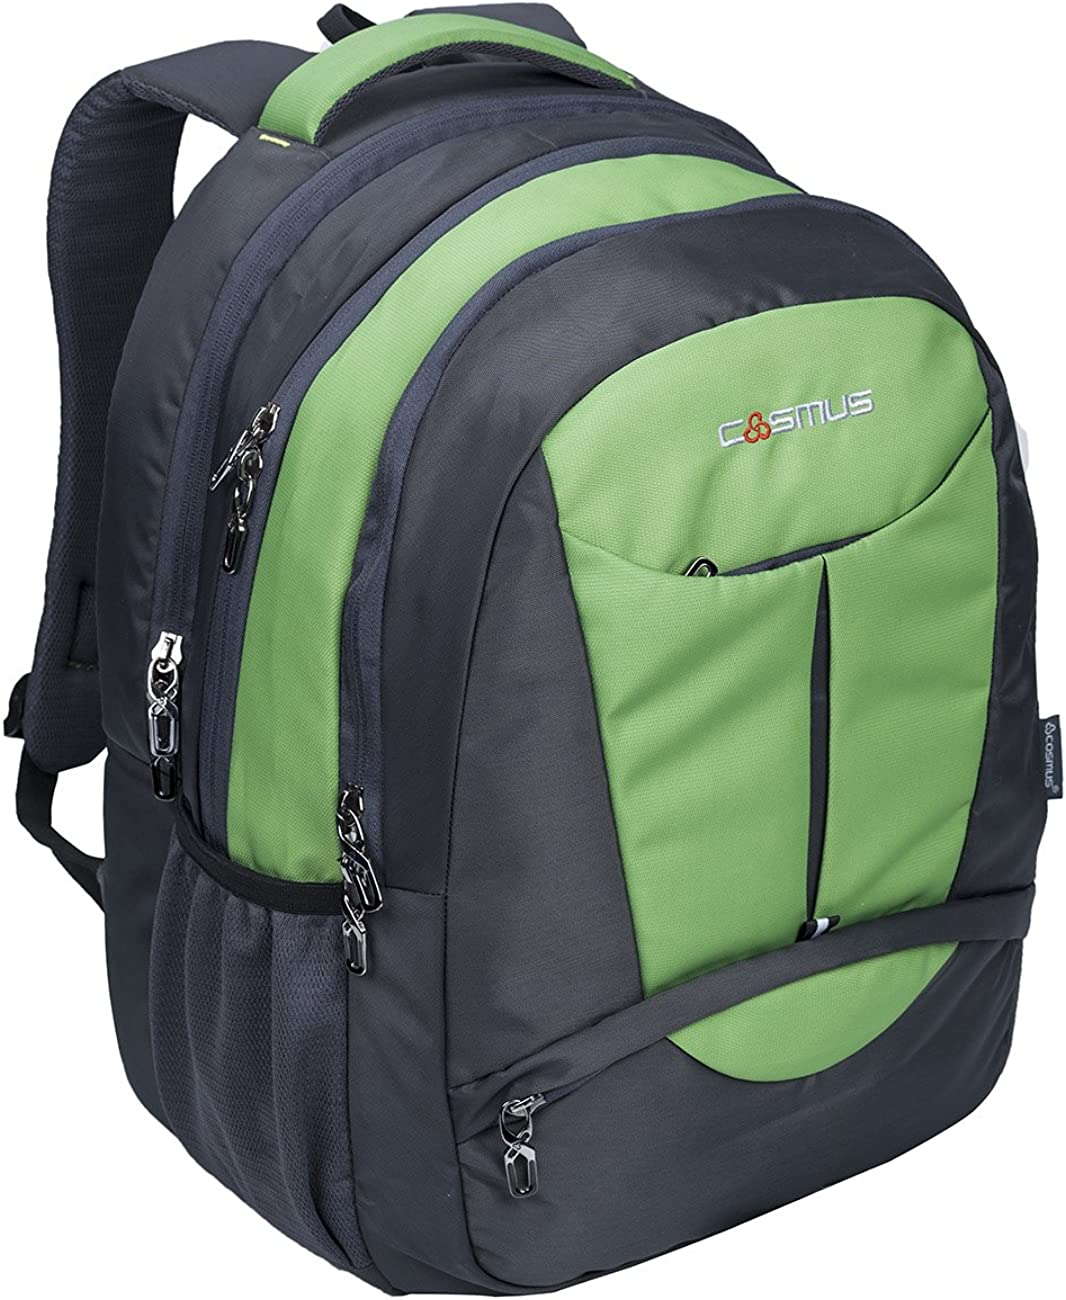 Cosmus Eden DX Grey P Green Polyester Waterproof Large Laptop Backpack